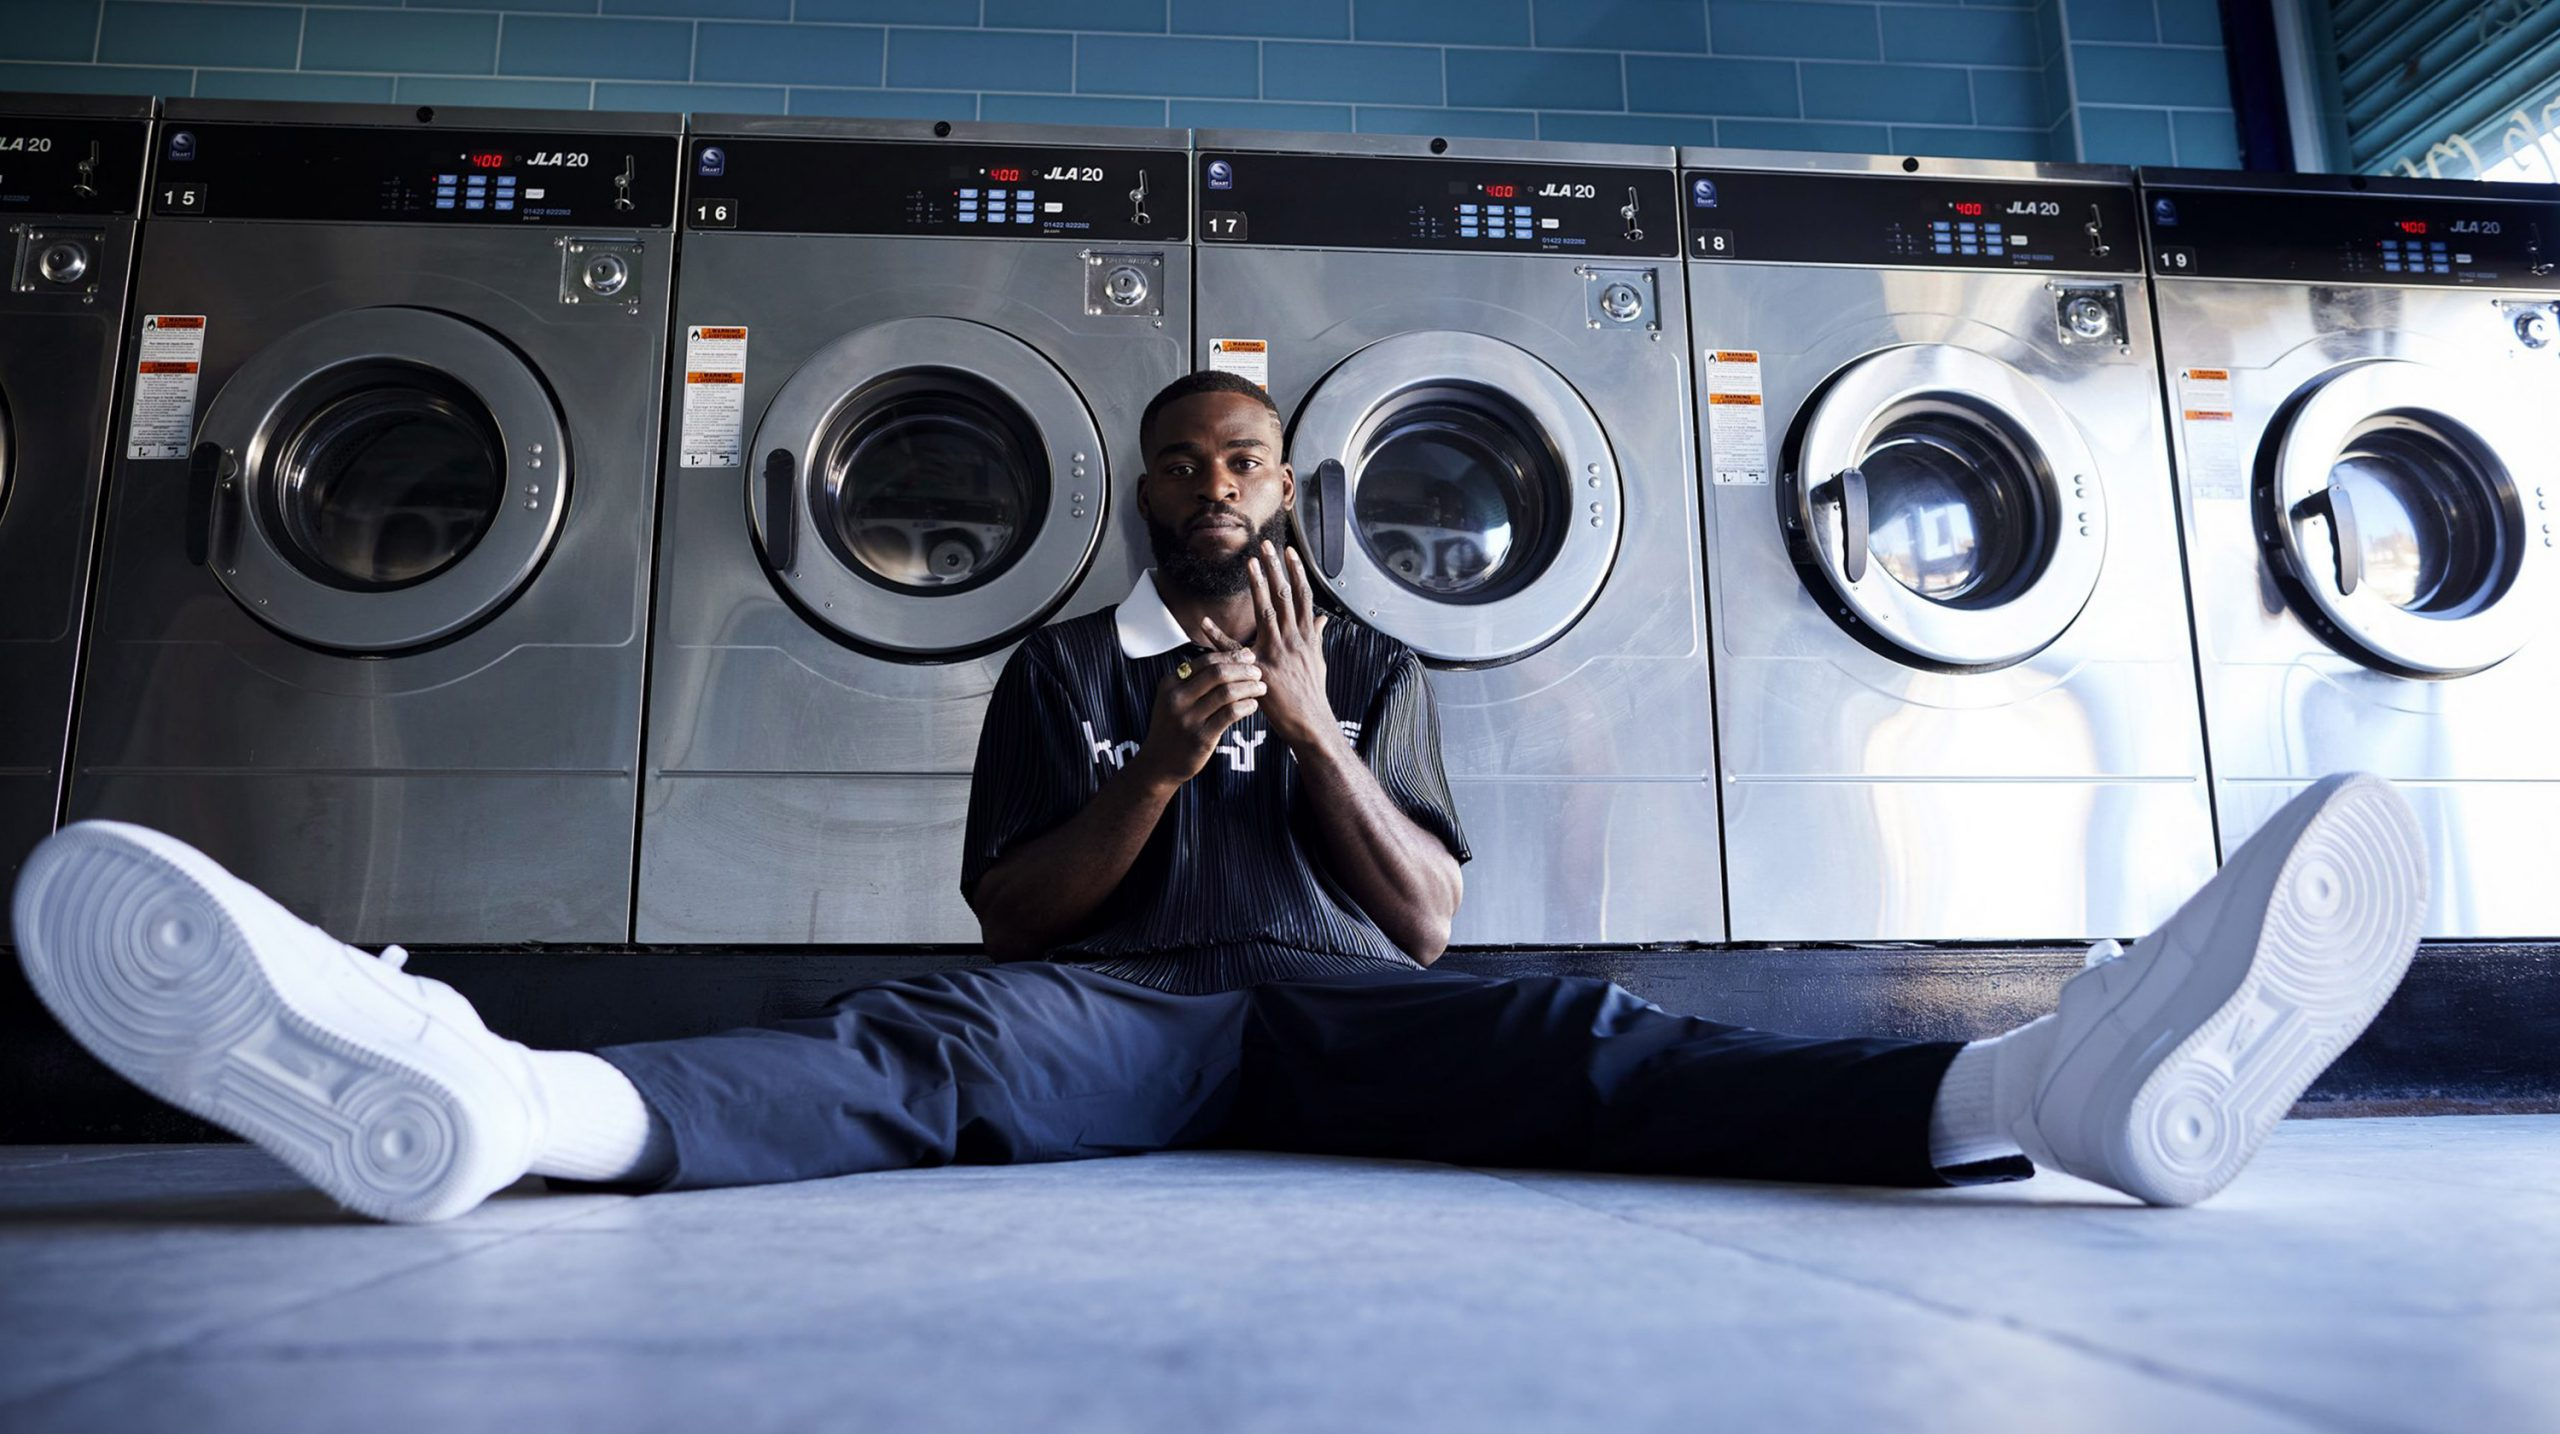 Joshua Buatsi sat on the floor with his legs out wide under some clothes washing machines